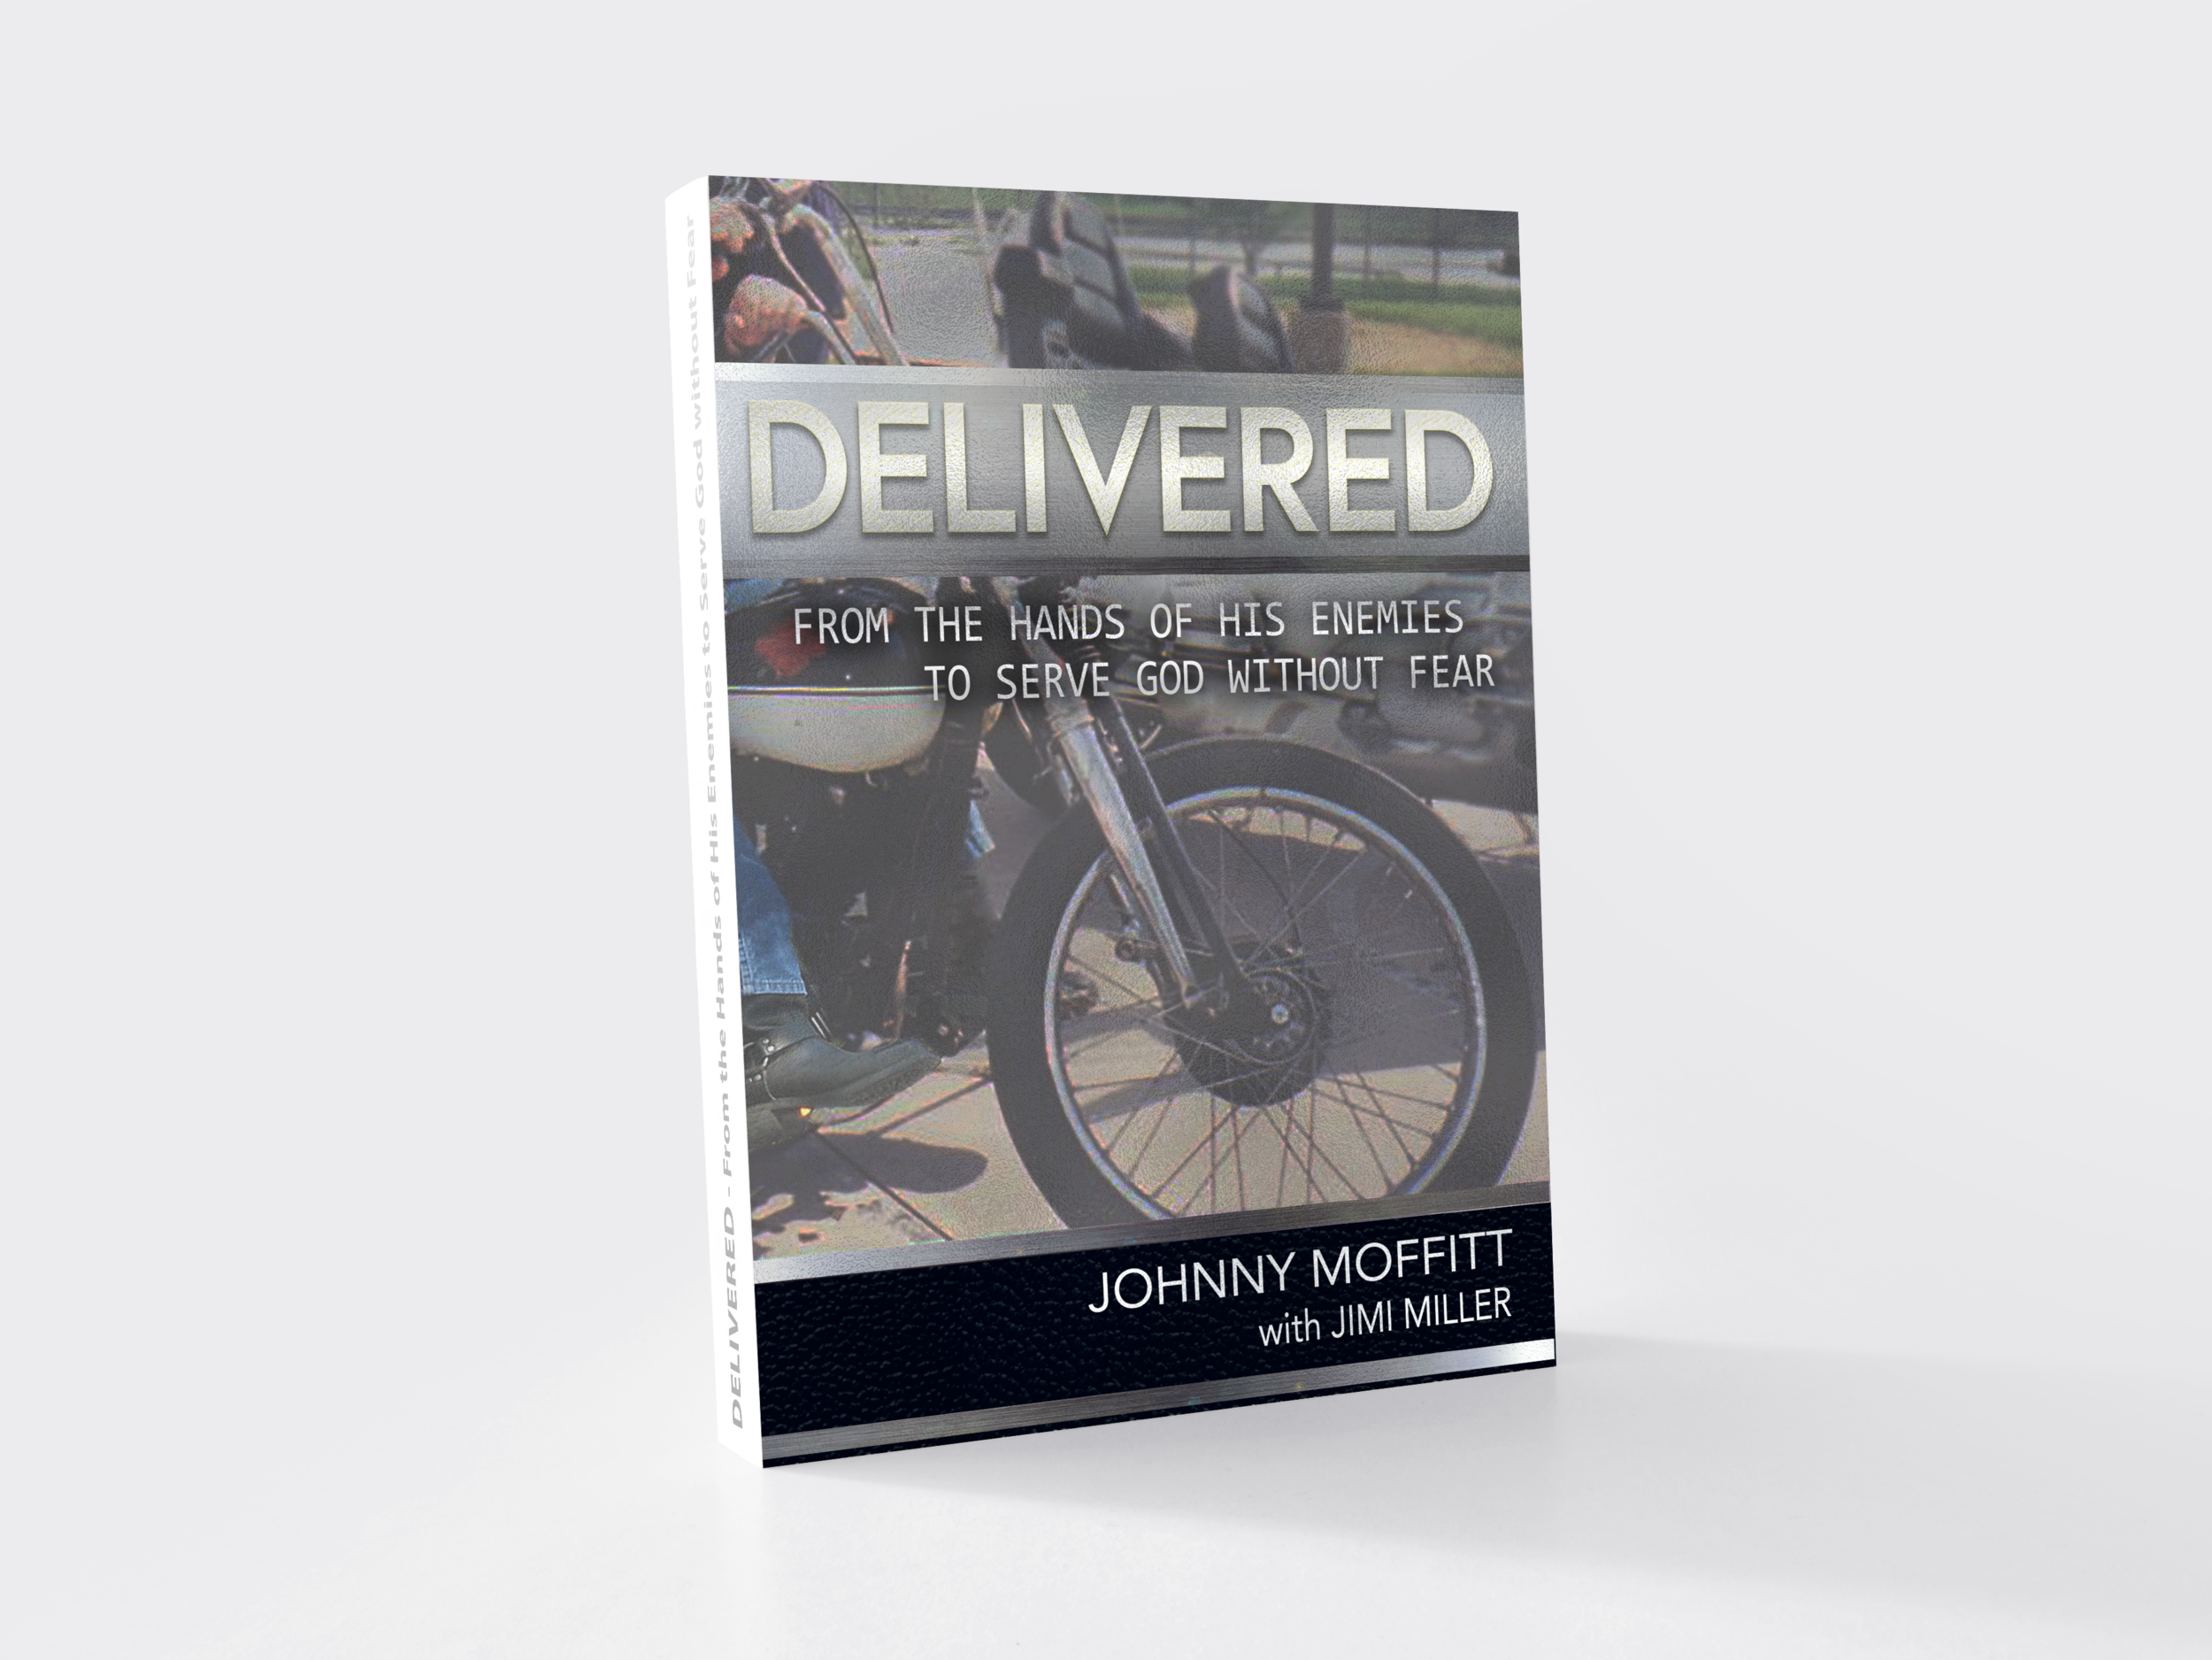 Delivered-book-mockup.png